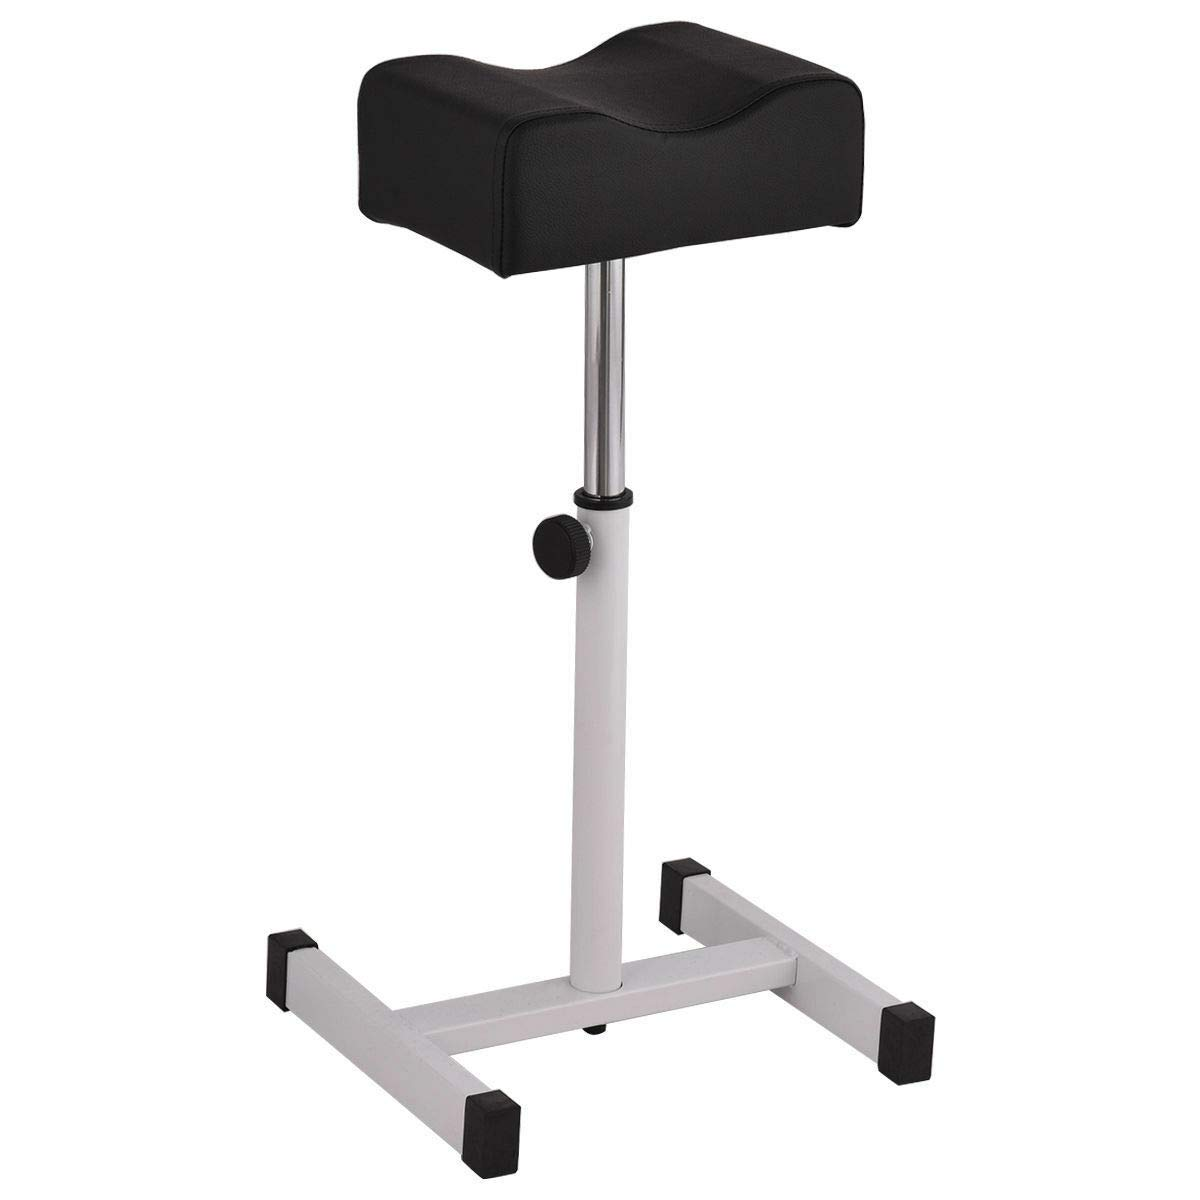 Siamchoice24 Equipment Stool Adjustable Nail Pedicure Black Manicure Footrest Stand Salon Spa